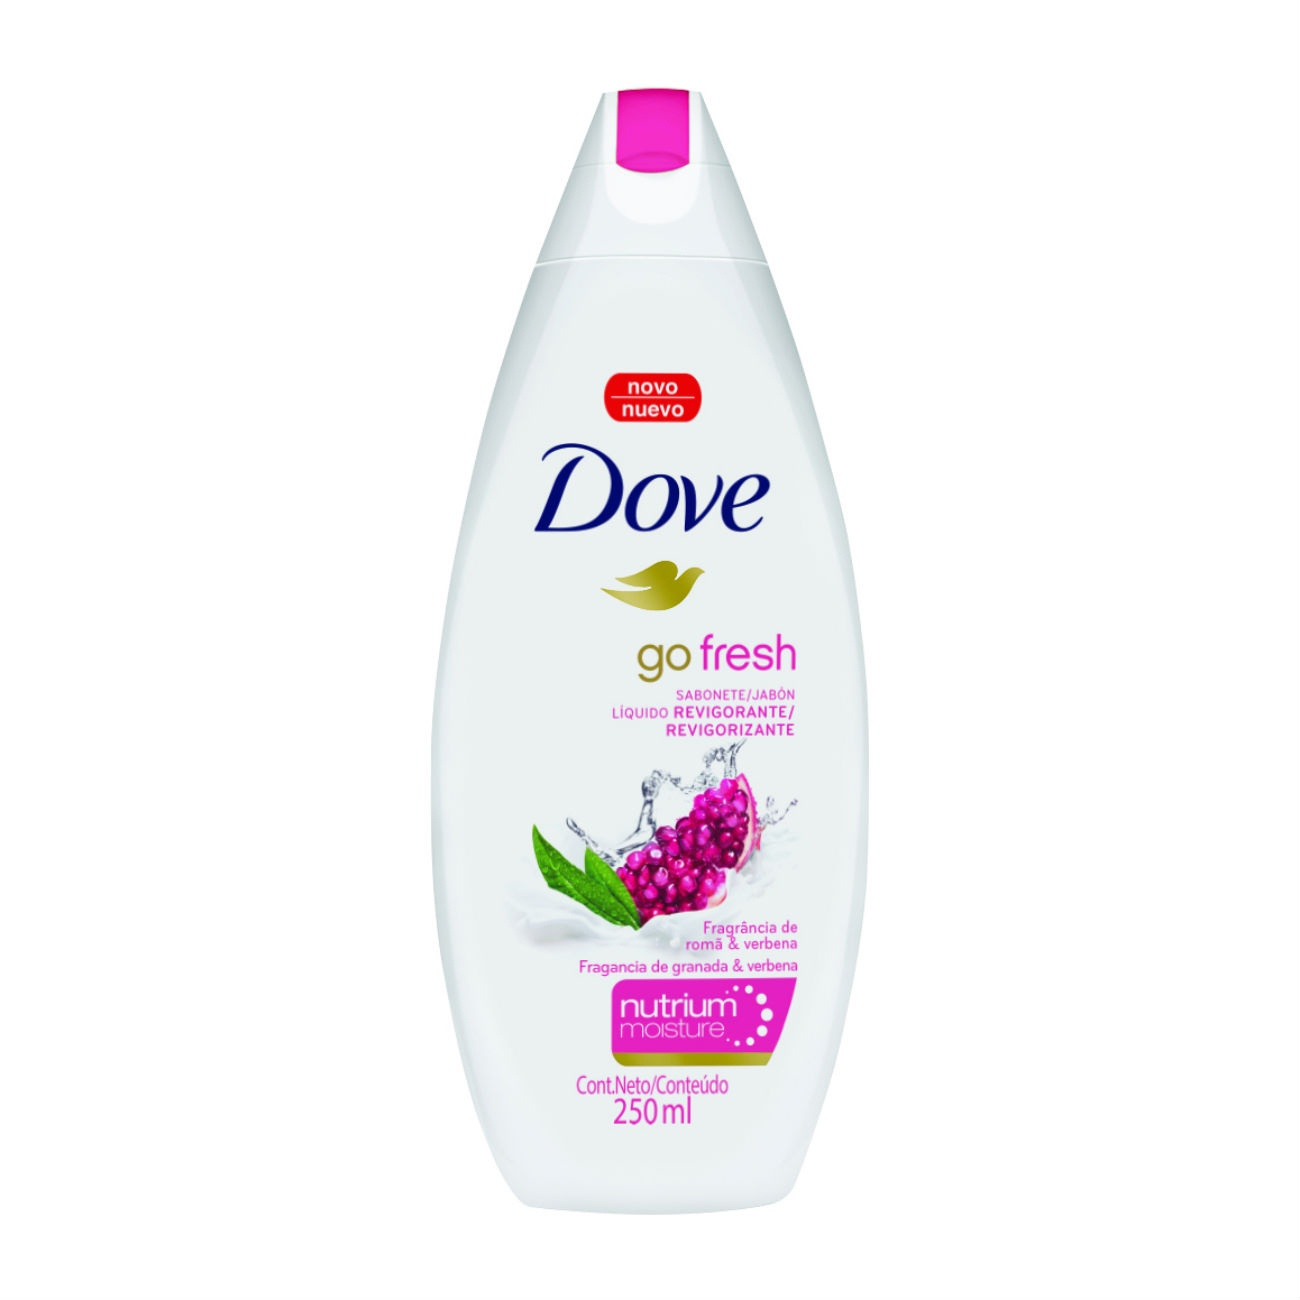 Sabonete L�quido Dove Go Fresh Revigorante 250ml